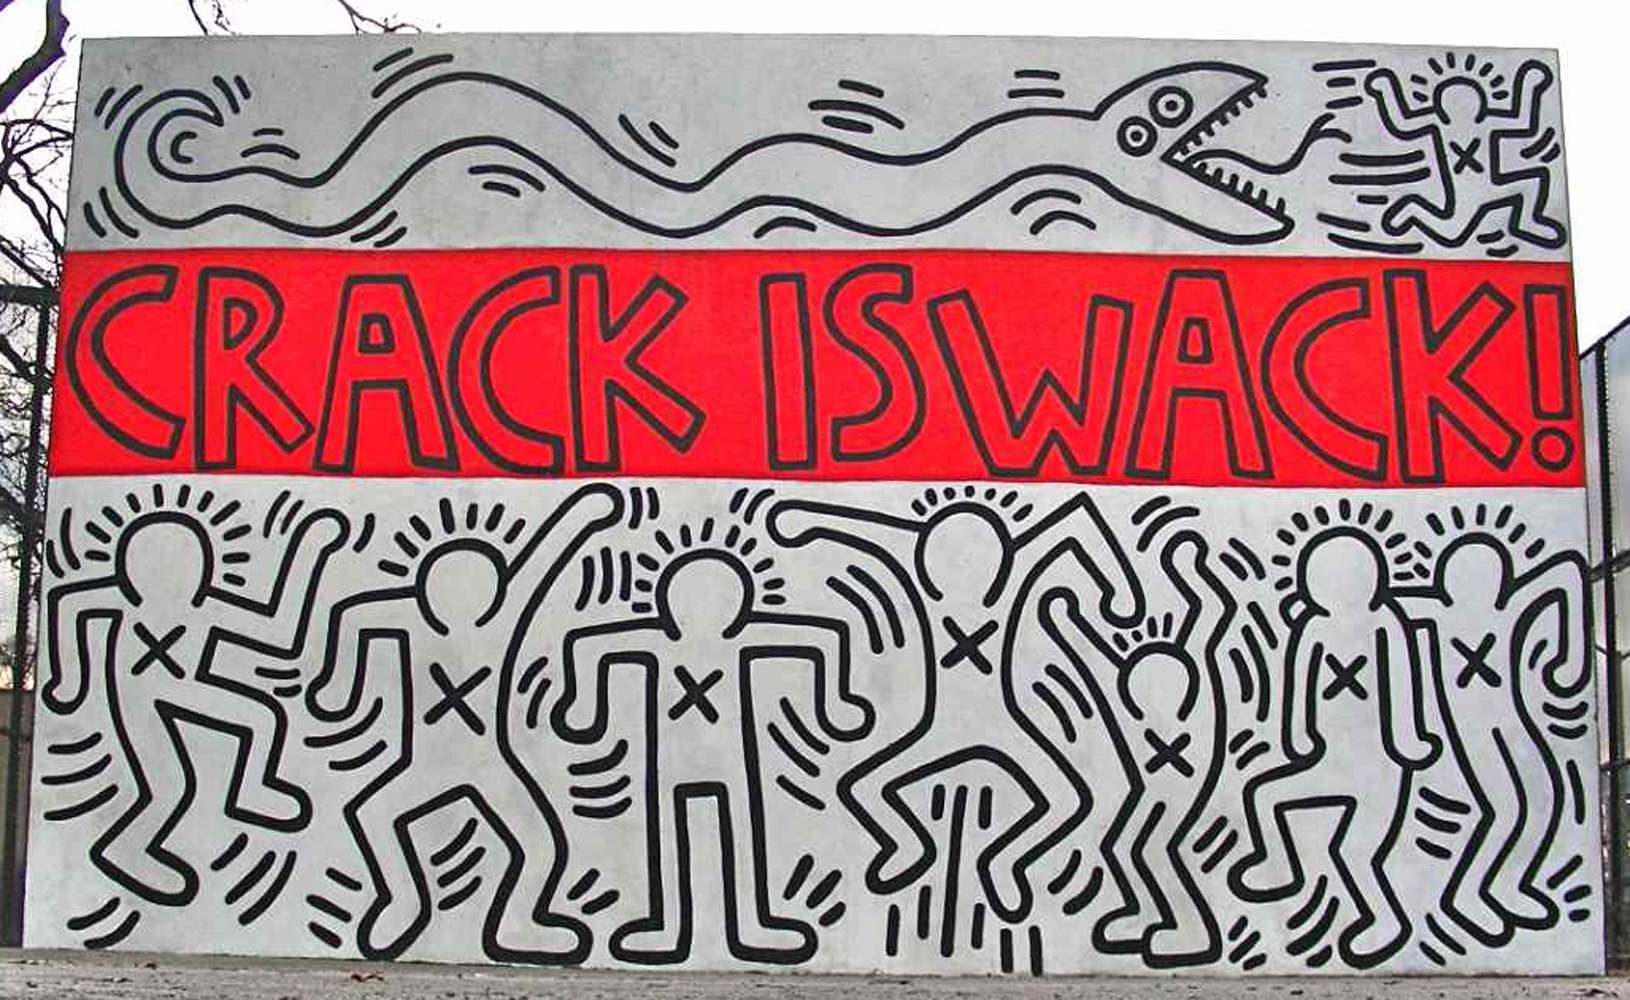 Basquiat s prevalence in the tech space adam marx 39 s mind for Crack is wack keith haring mural